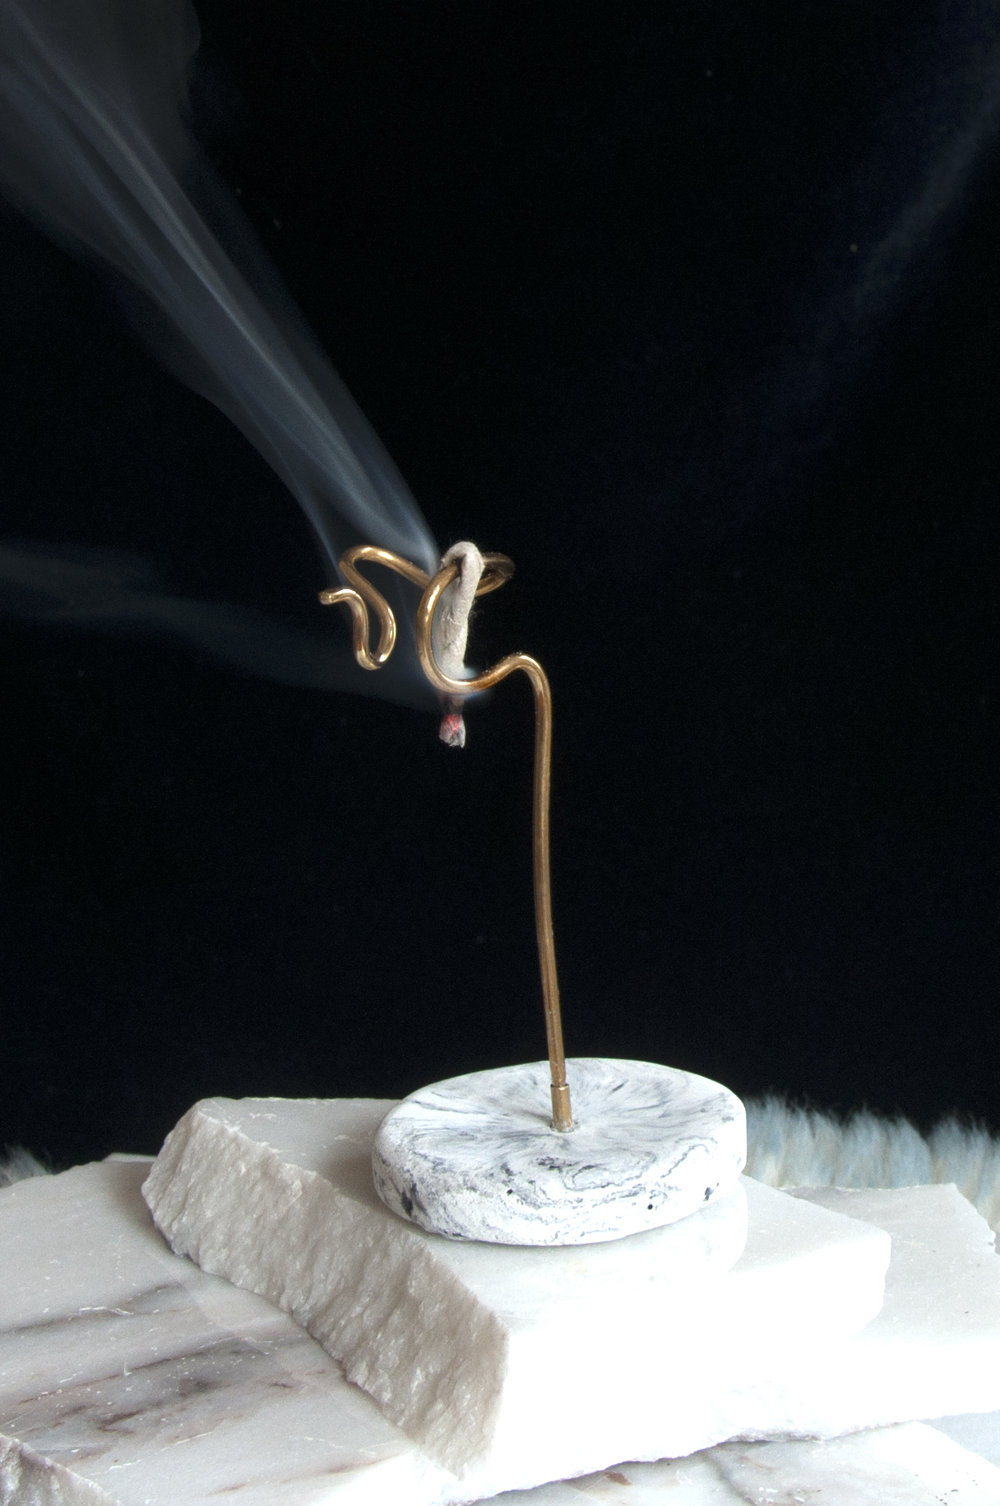 Intertwined Rope Incense Holder   Each base is made of high grade concrete that is marble while pouring into base molds. The top half is made by bending think gauge wire. The piece is modular to accommodate stick incense as well.